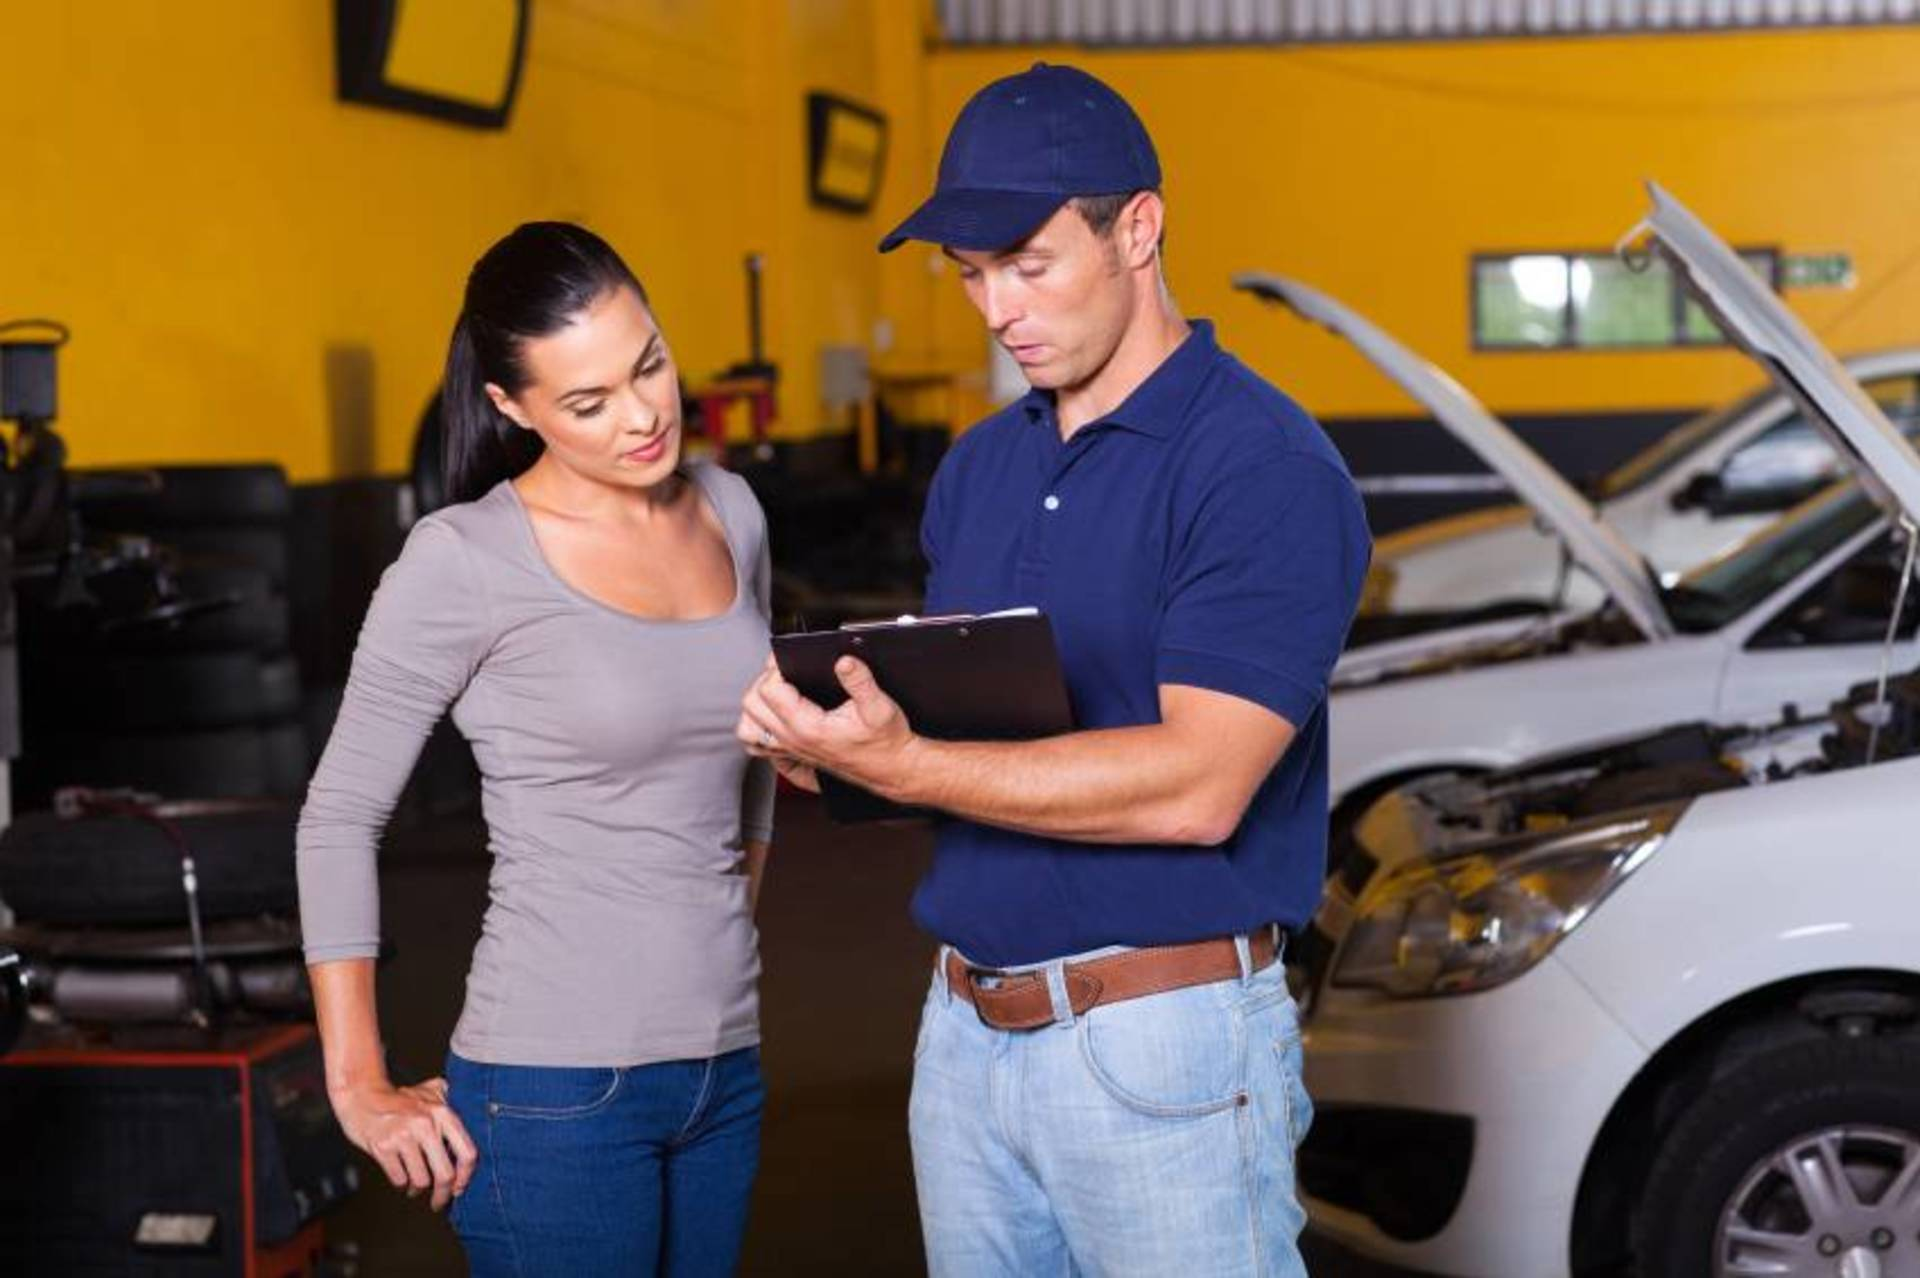 5 Things to Look for Before Hiring an Auto Mechanic image